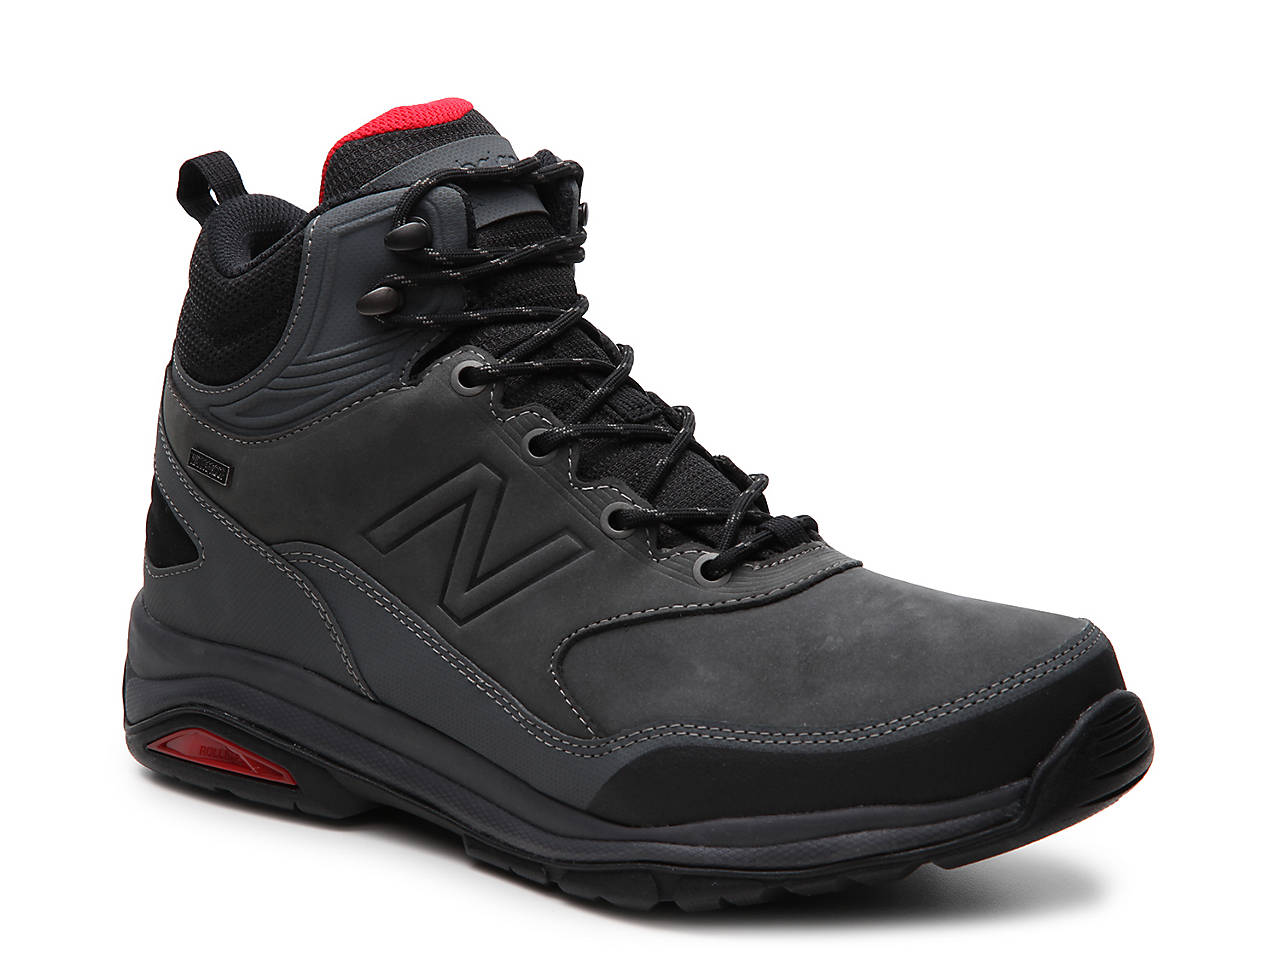 30918c64ac6cd New Balance 1400 Hiking Boot - Men's Men's Shoes | DSW